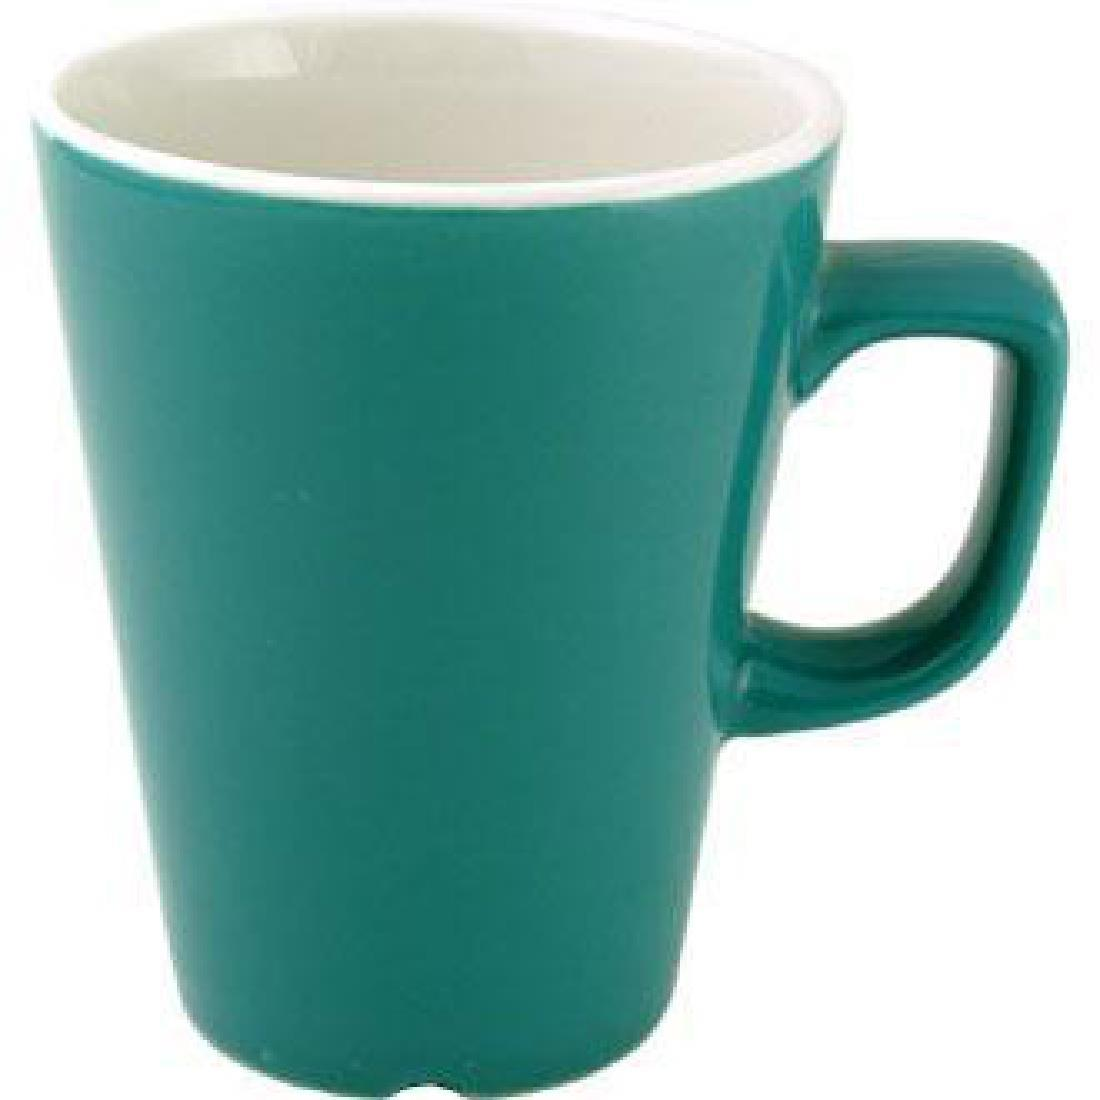 W893 - New Horizons Solid Colour Glaze Cafe Late Mug